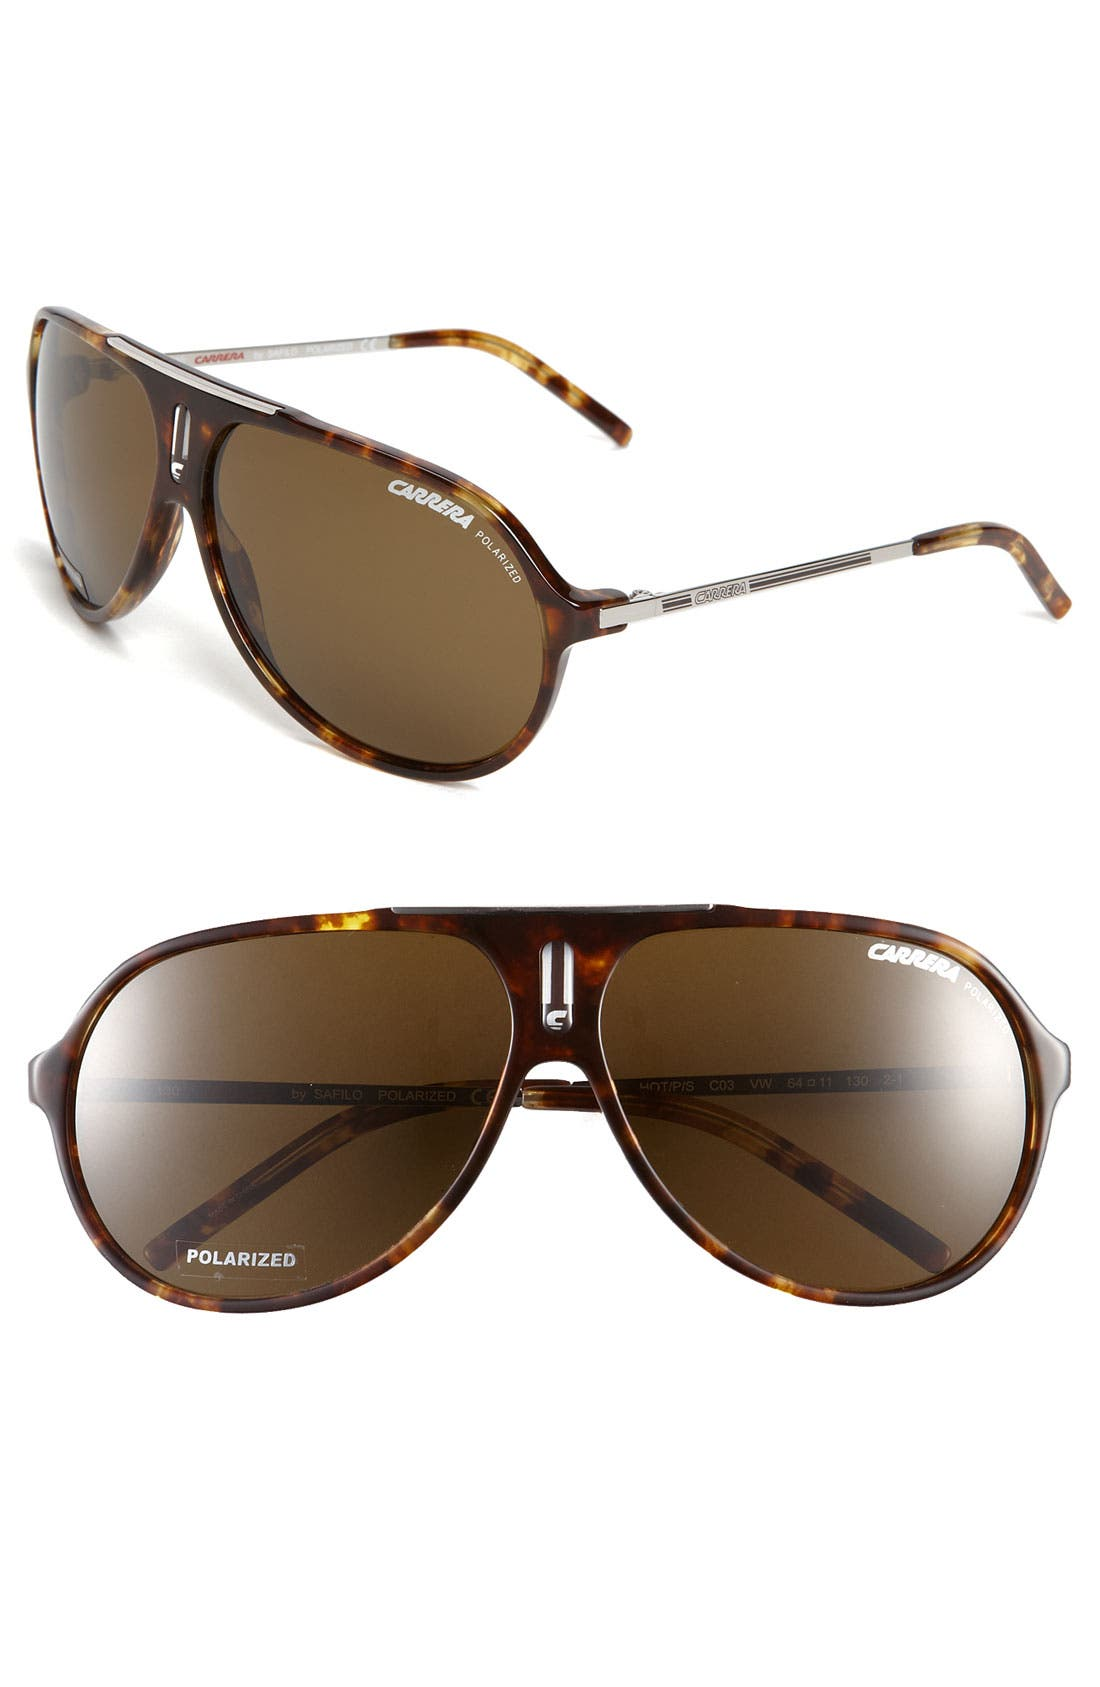 Main Image - Carrera Eyewear 'Hot' 64mm Polarized Aviator Sunglasses